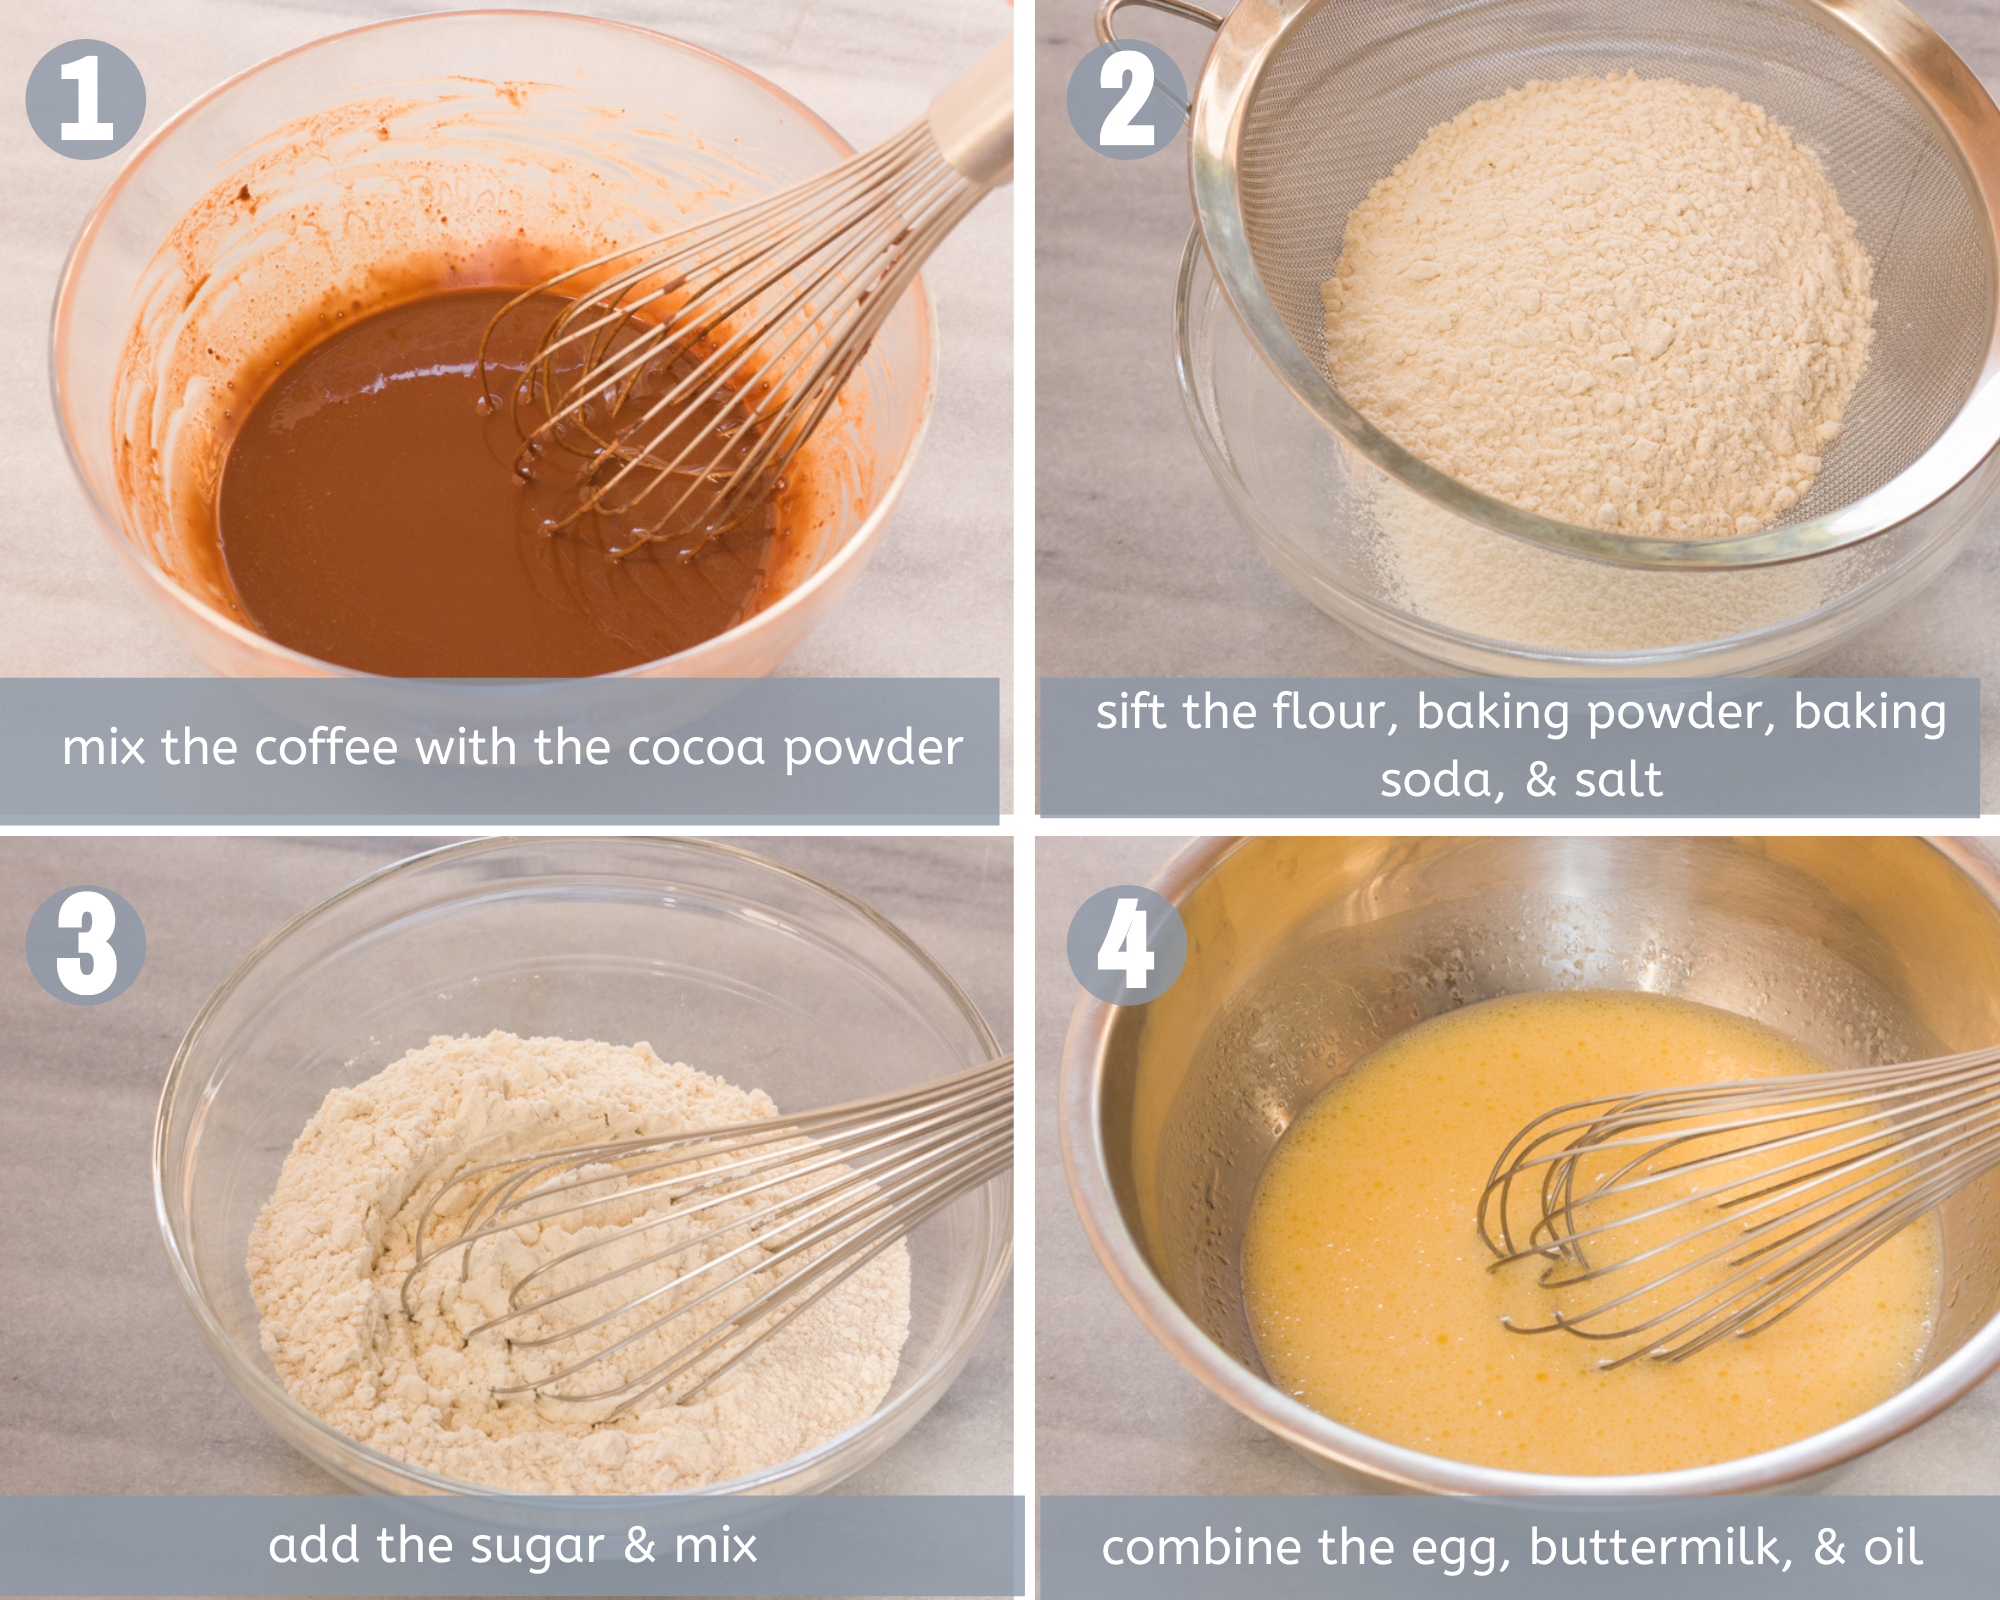 steps 1 to 4 for chocolate cupcakes